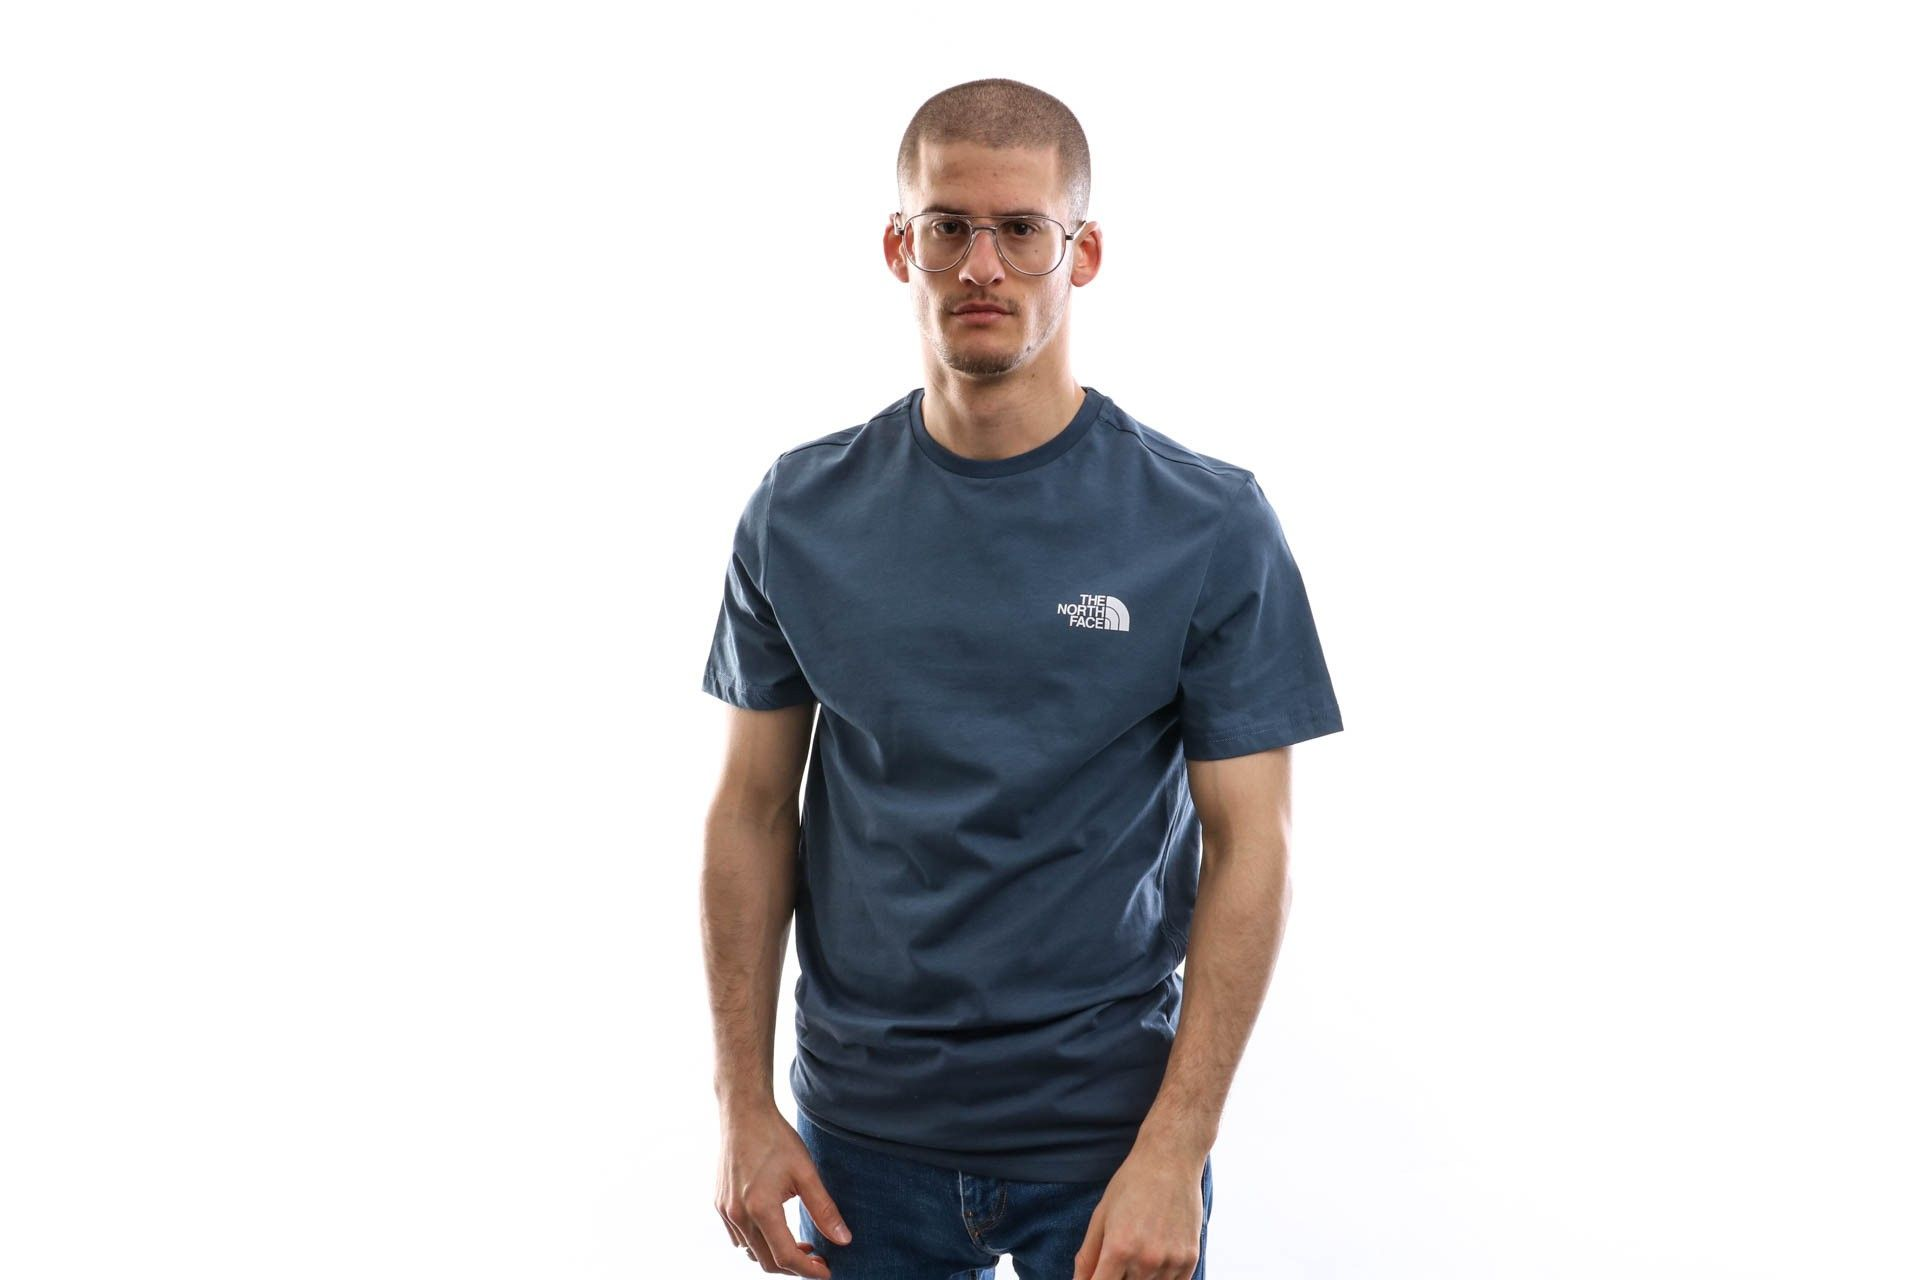 Afbeelding van The North Face T-shirt Men'S S/S Simple Dome Tee Bluewing Teal NF0A2TX5N4L